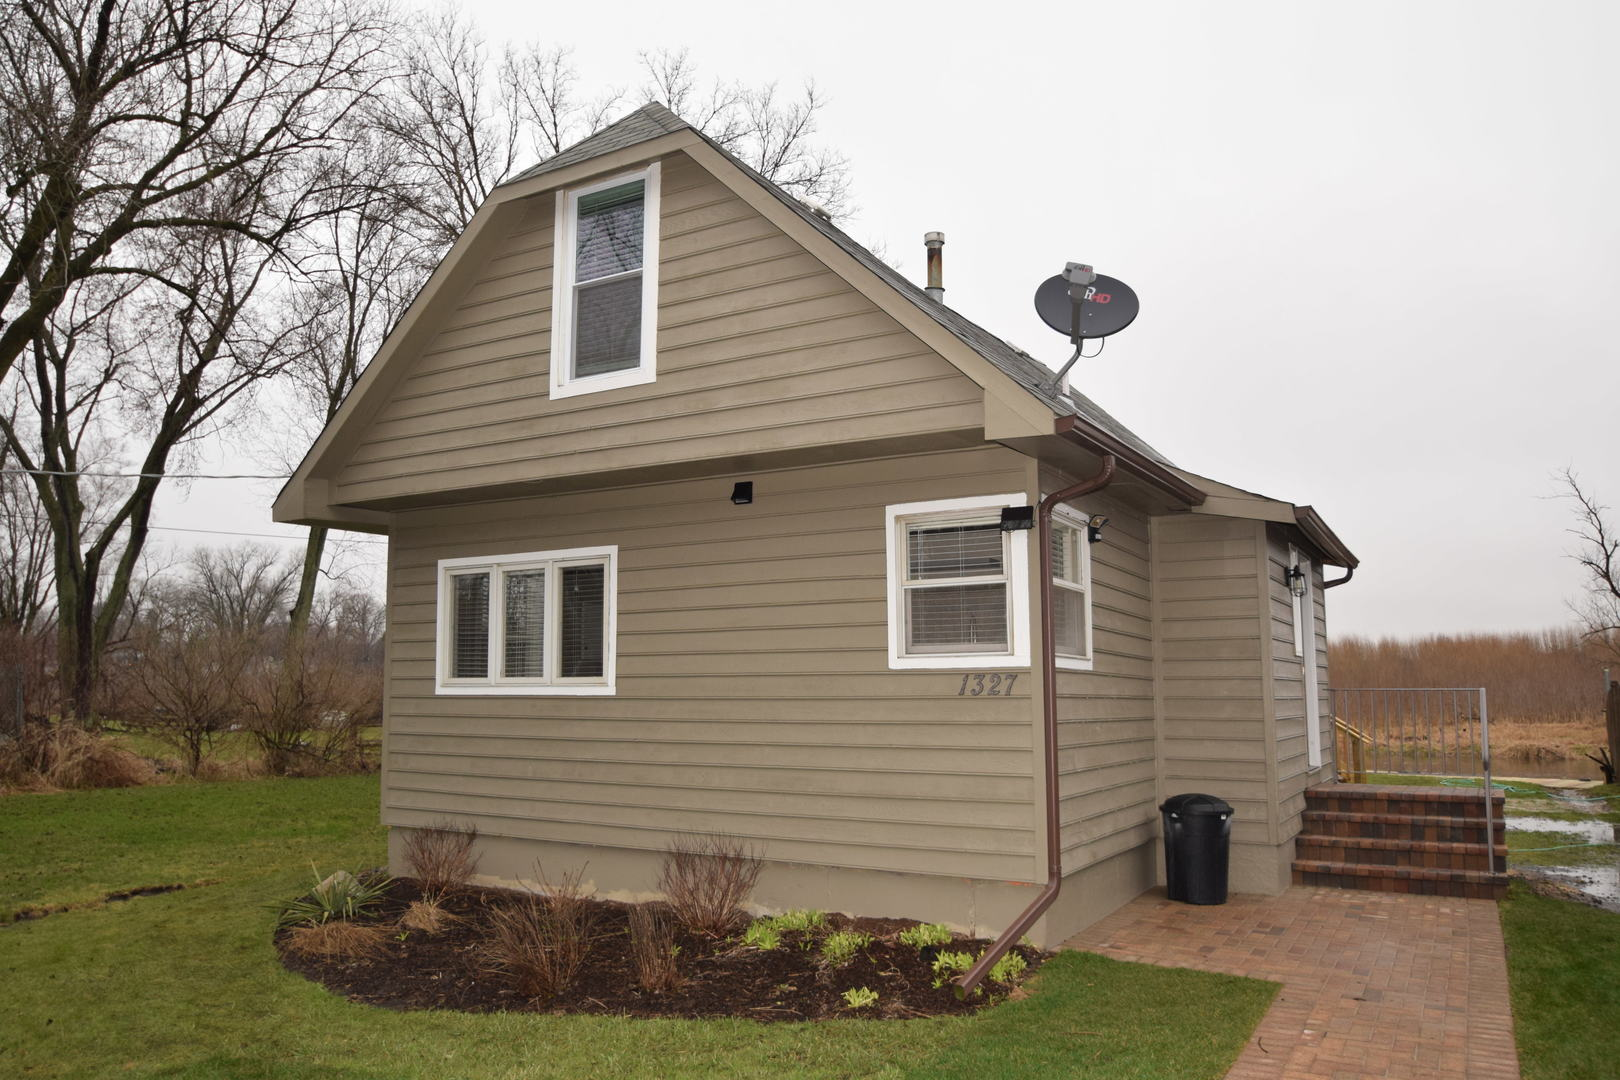 1327 Nippersink Drive, Spring Grove, Illinois 60081